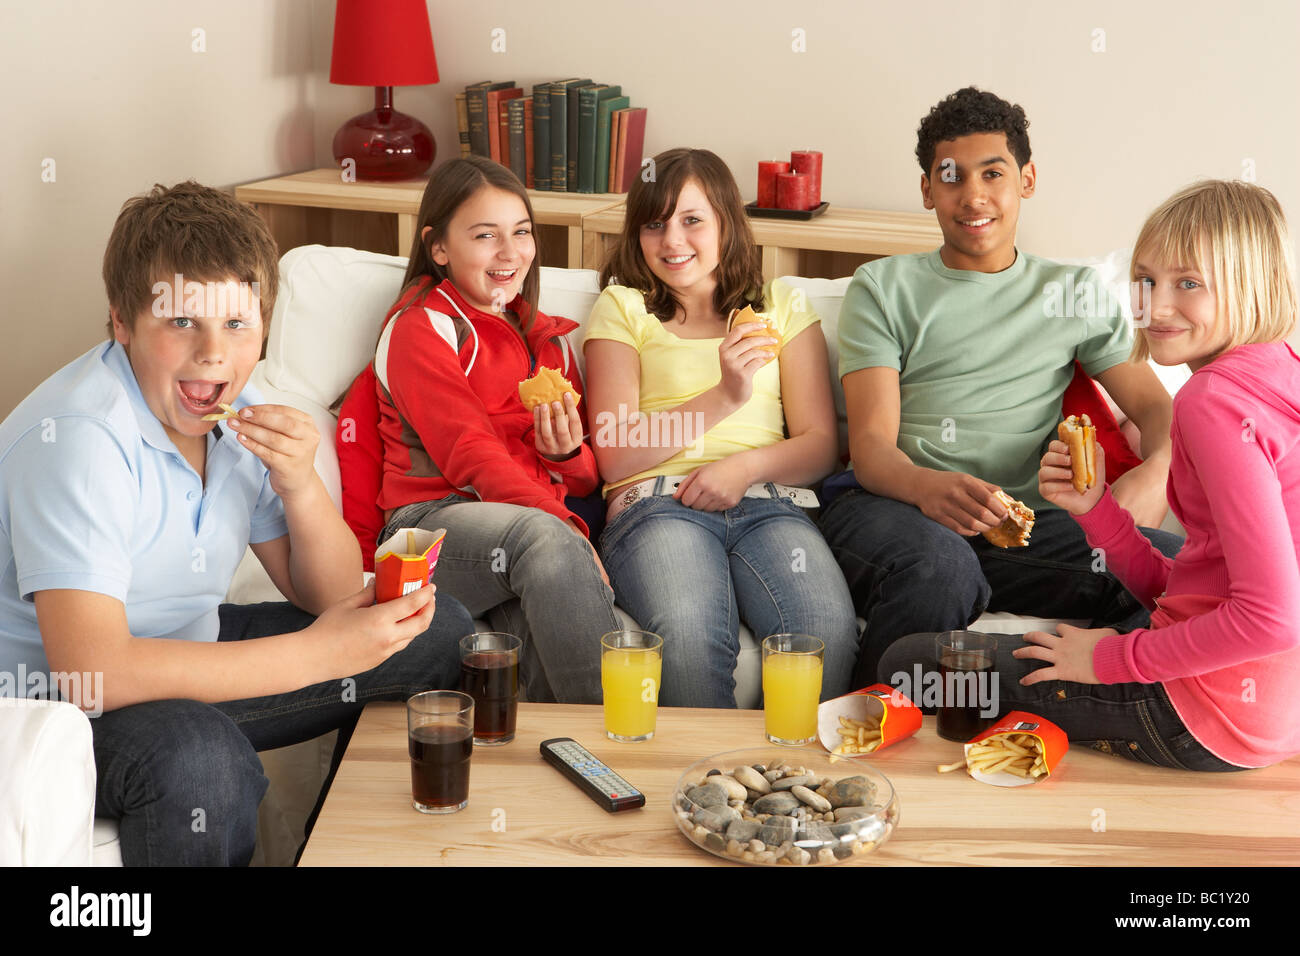 Group Of Children Eating Burgers At Home - Stock Image